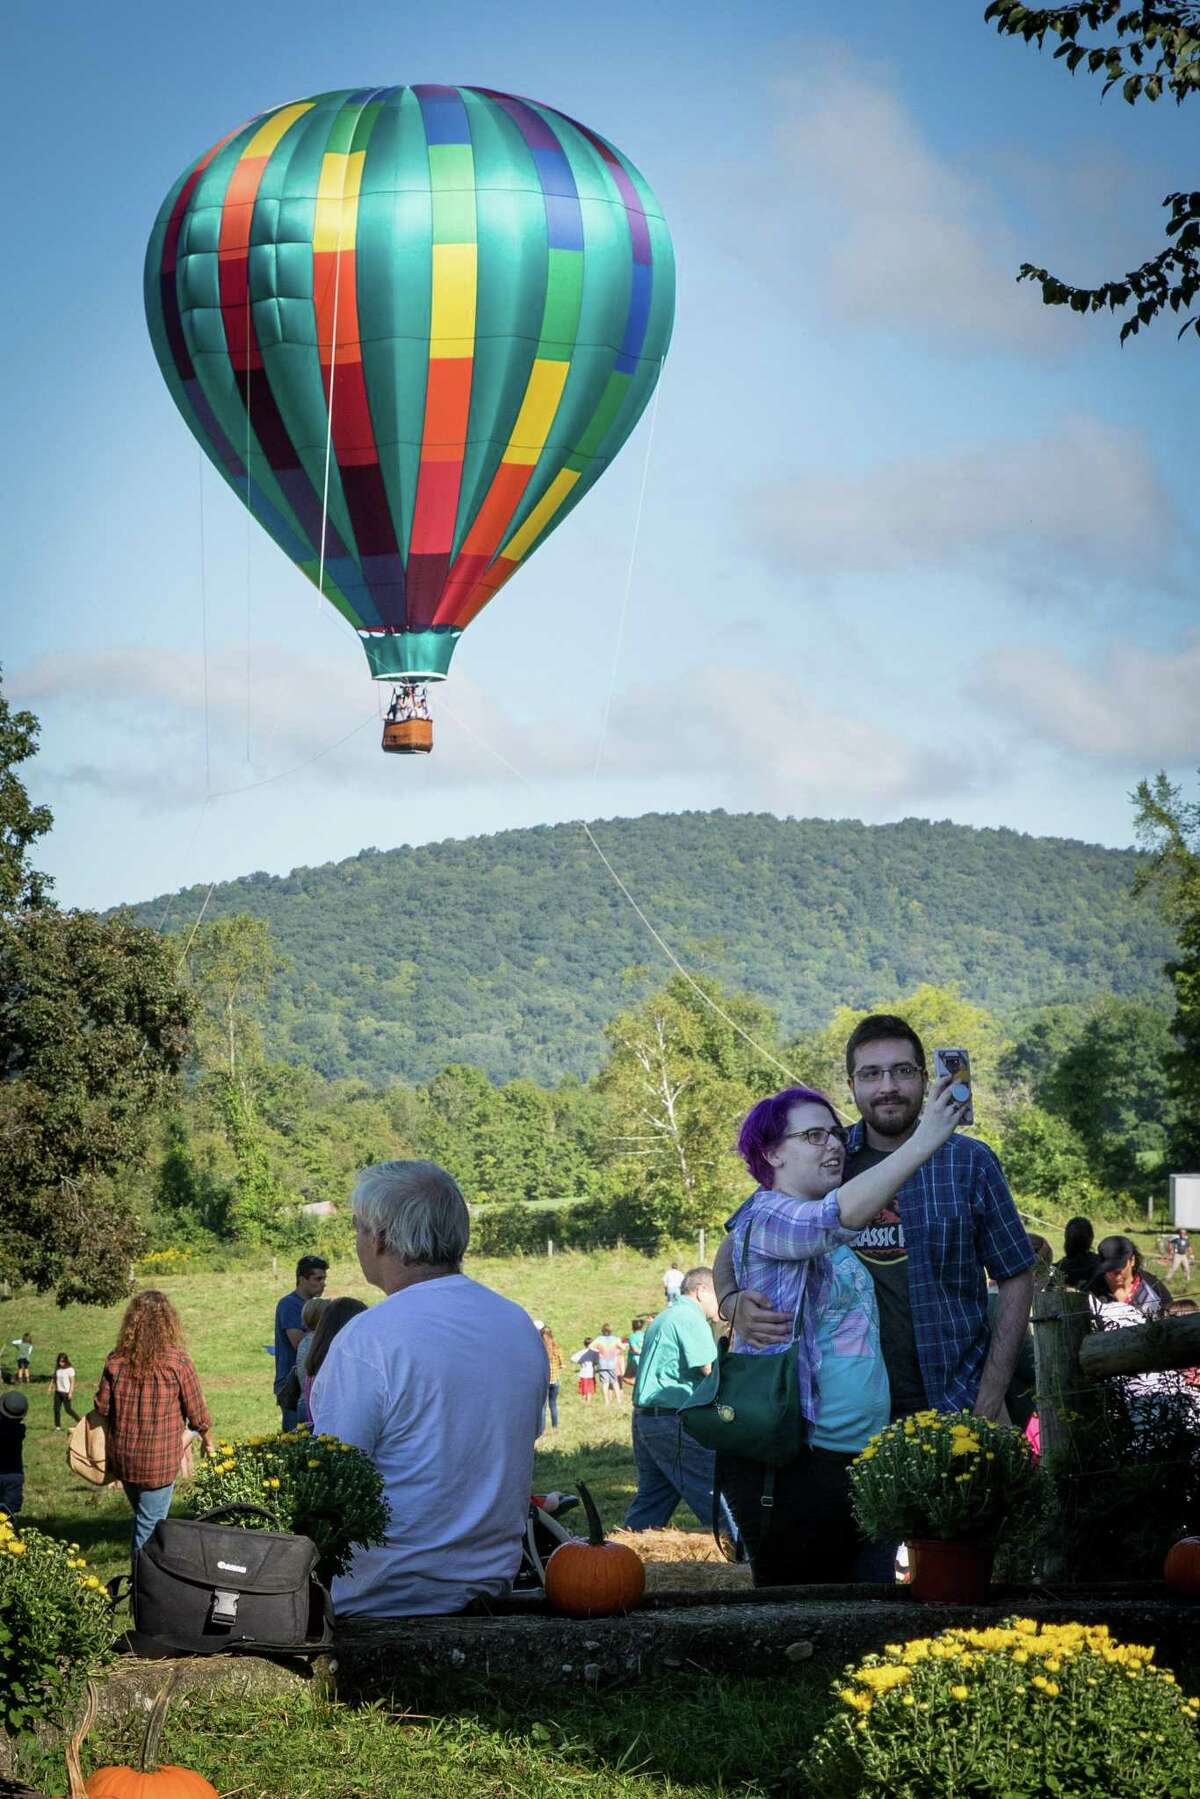 Elizabeth Edwards and Javier Martinez of New Milford pose for a selfie with the hot-air balloon as the background during the Weantinoge Heritage Land Trust fall celebration on Saturday, September 15, 2018, at Smyrski Farm in New Milford, CT. Liberty Balloon Company out of Groveland, NY, gave tethered hot-air balloon rides starting at 8am.